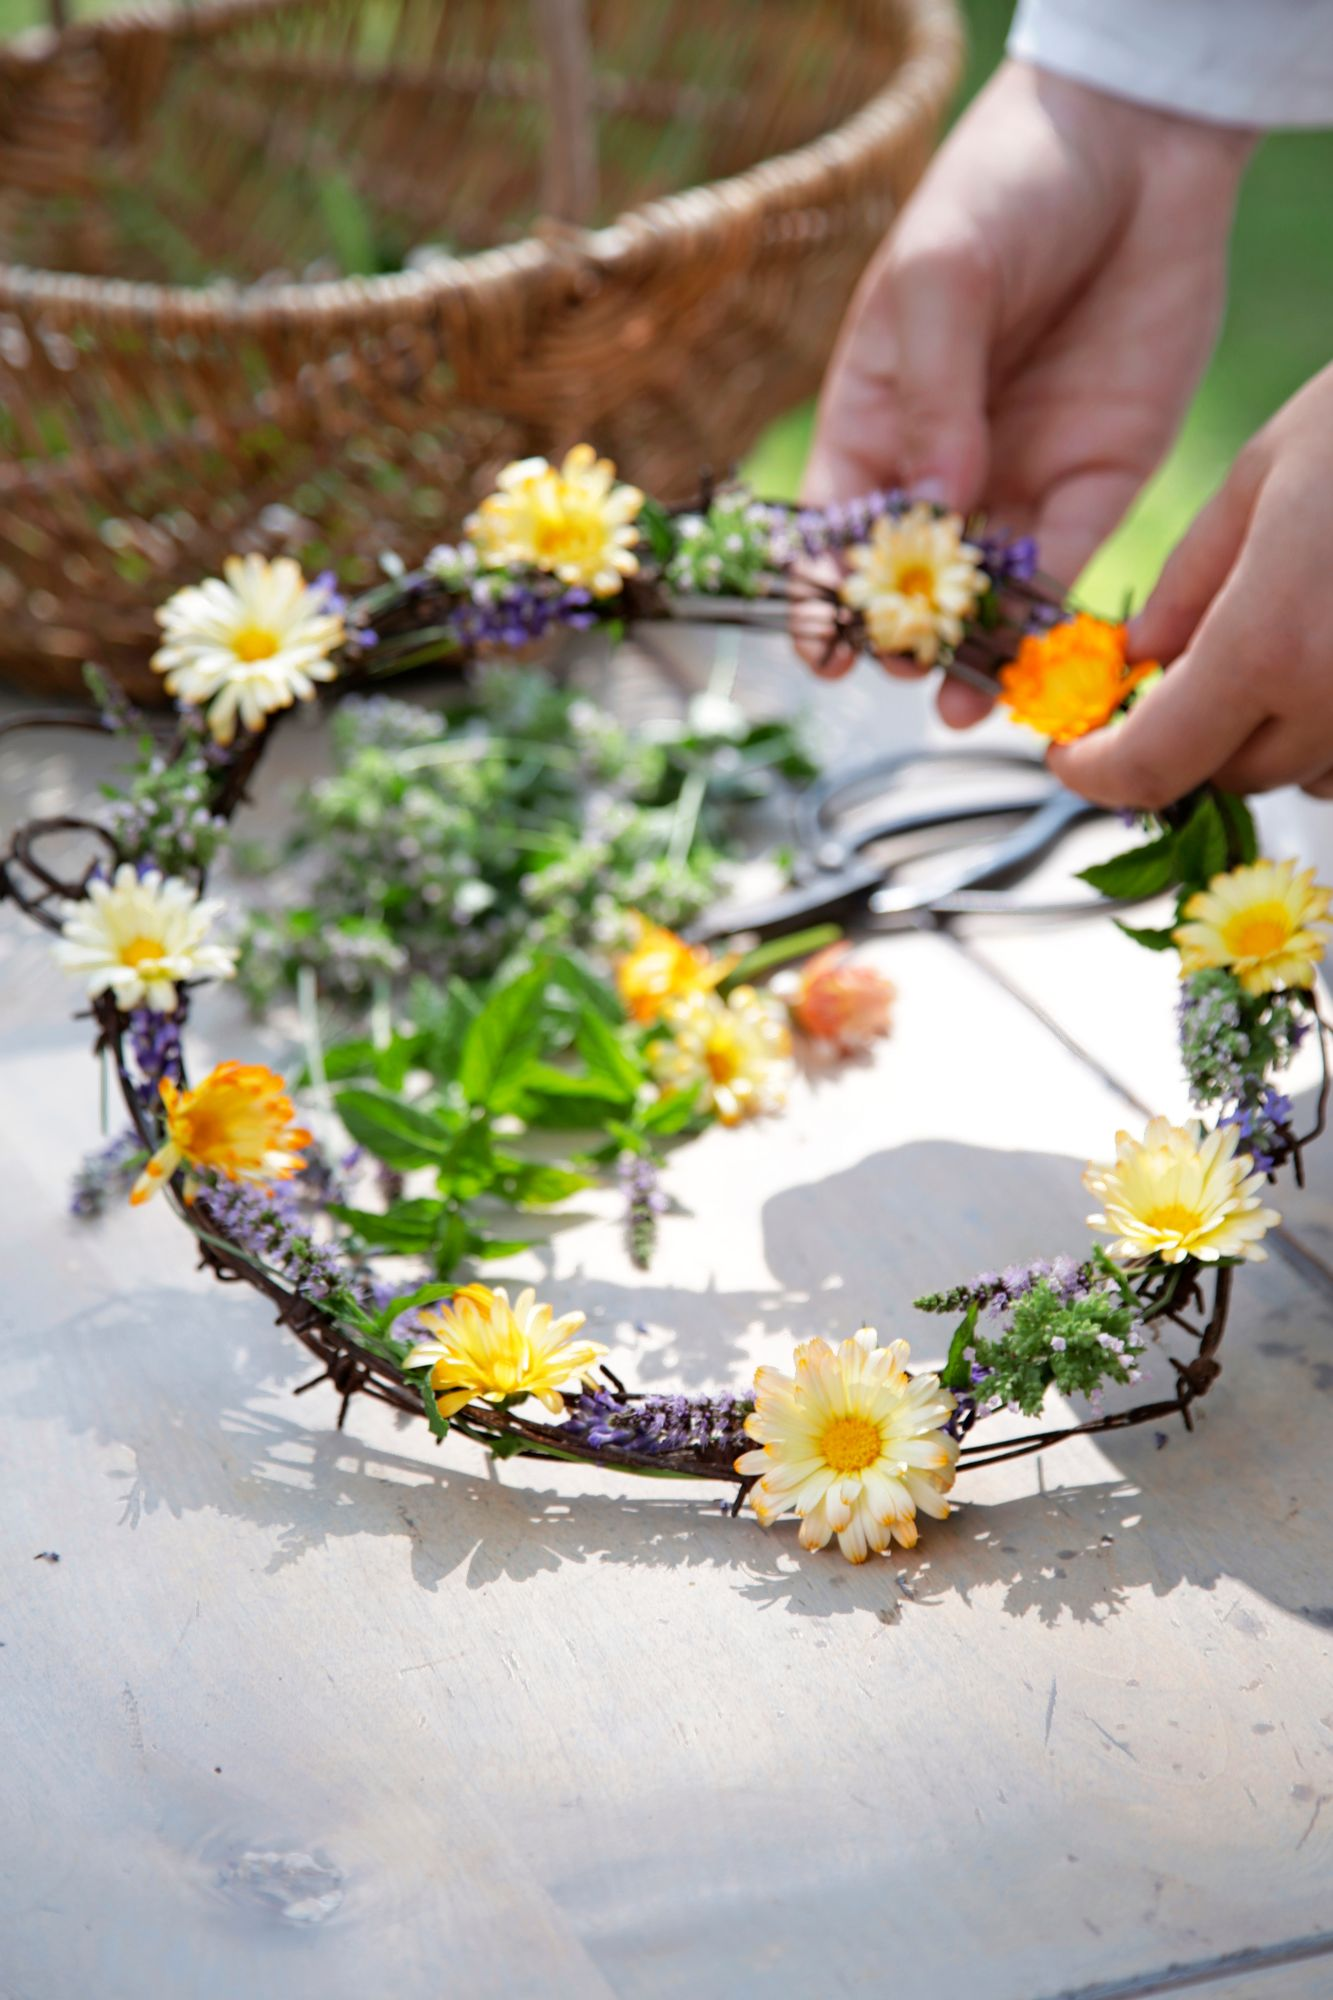 Collect annual summer flowers of sadness for home decoration and table settings.  It just inspires the plants to bloom more happily.